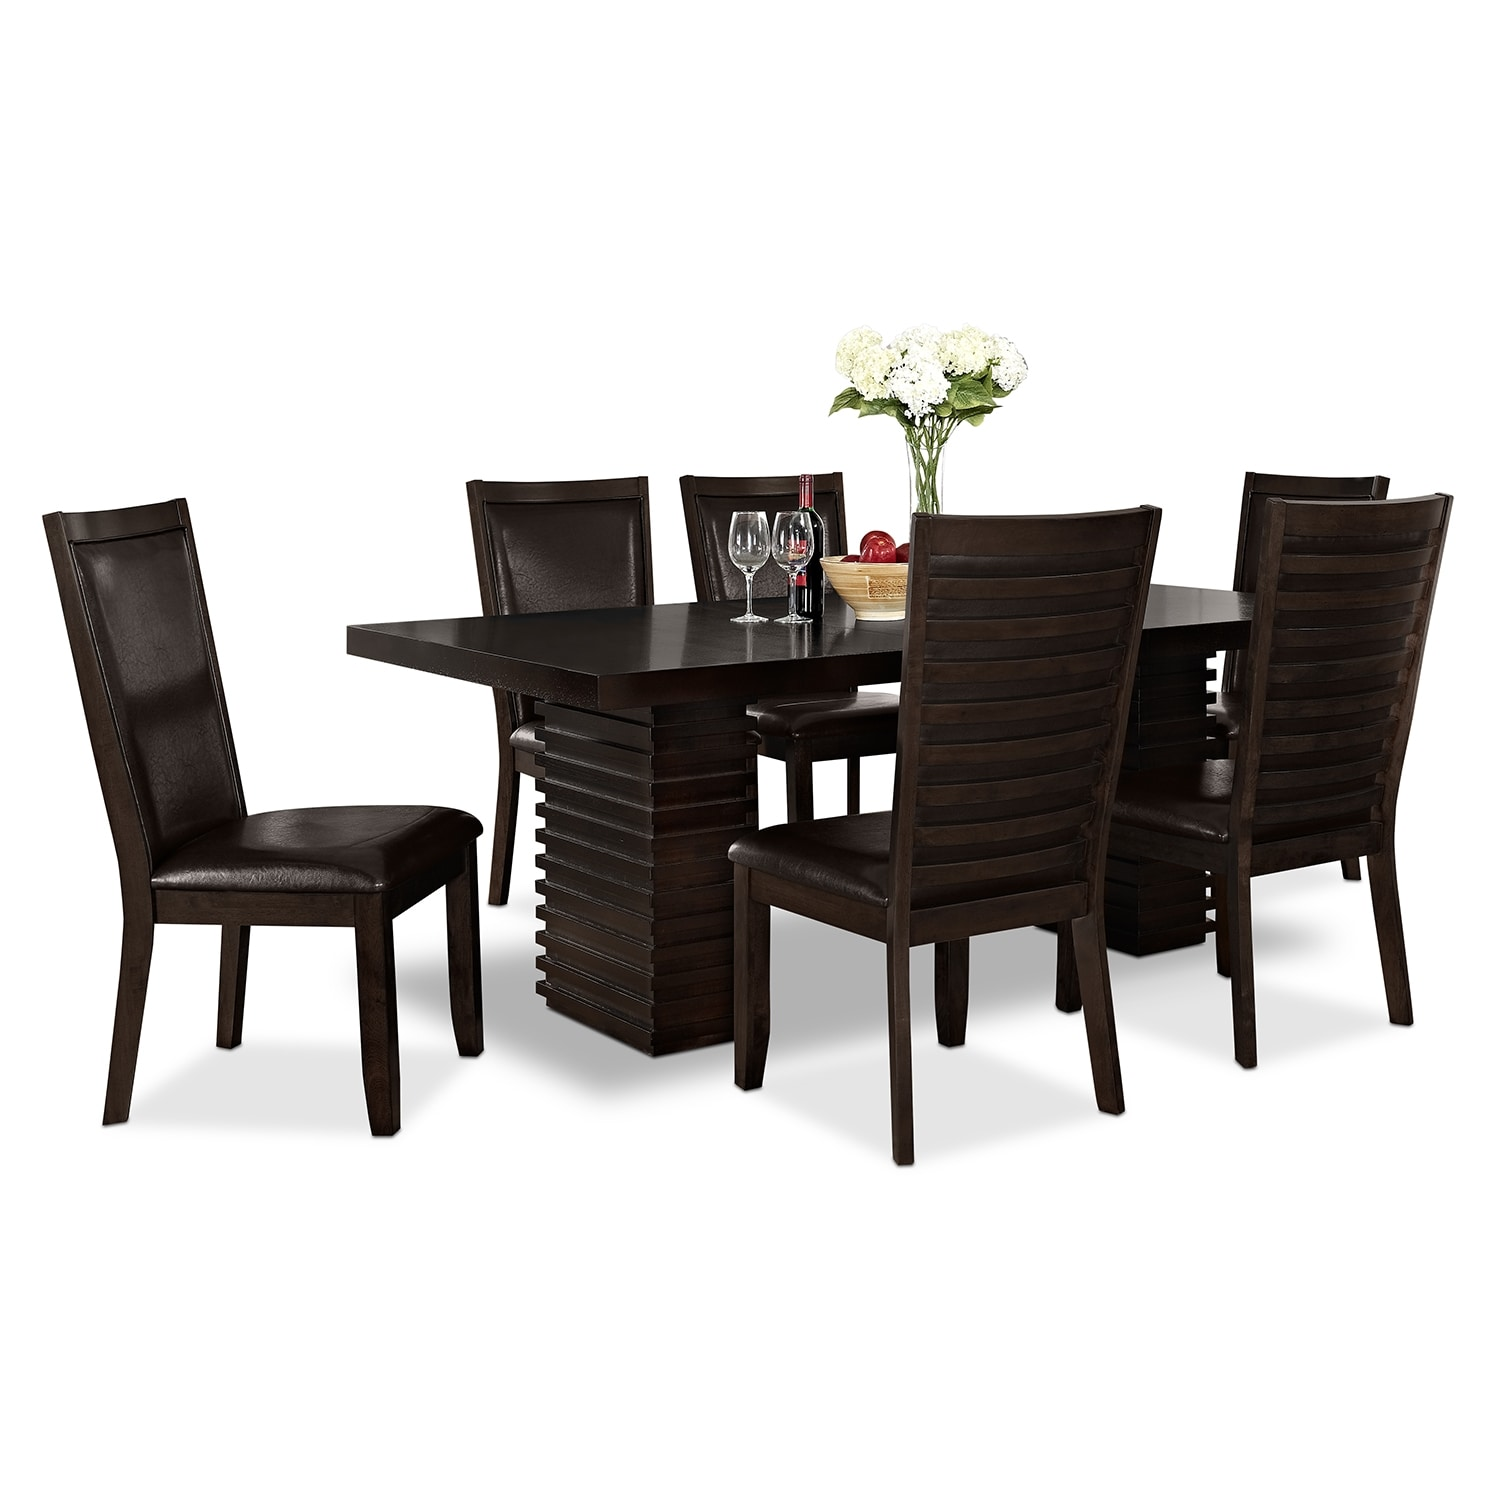 Paragon Table And 6 Chairs   Merlot And Brown